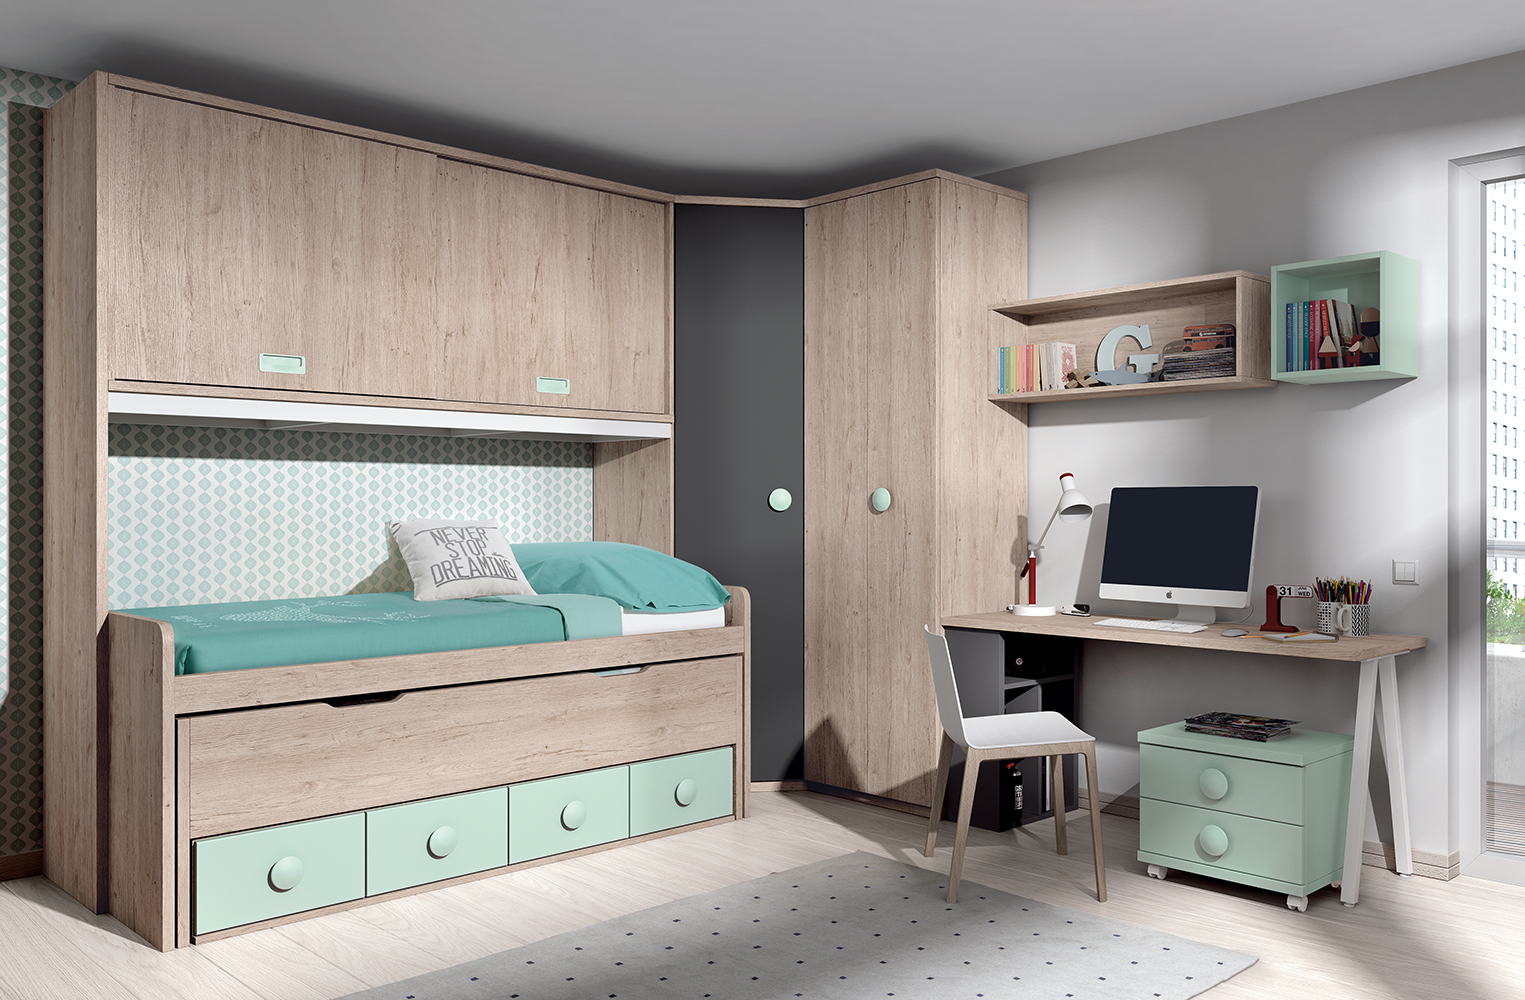 Mueble puente dormitorio great finest tips para with for Mueble puente